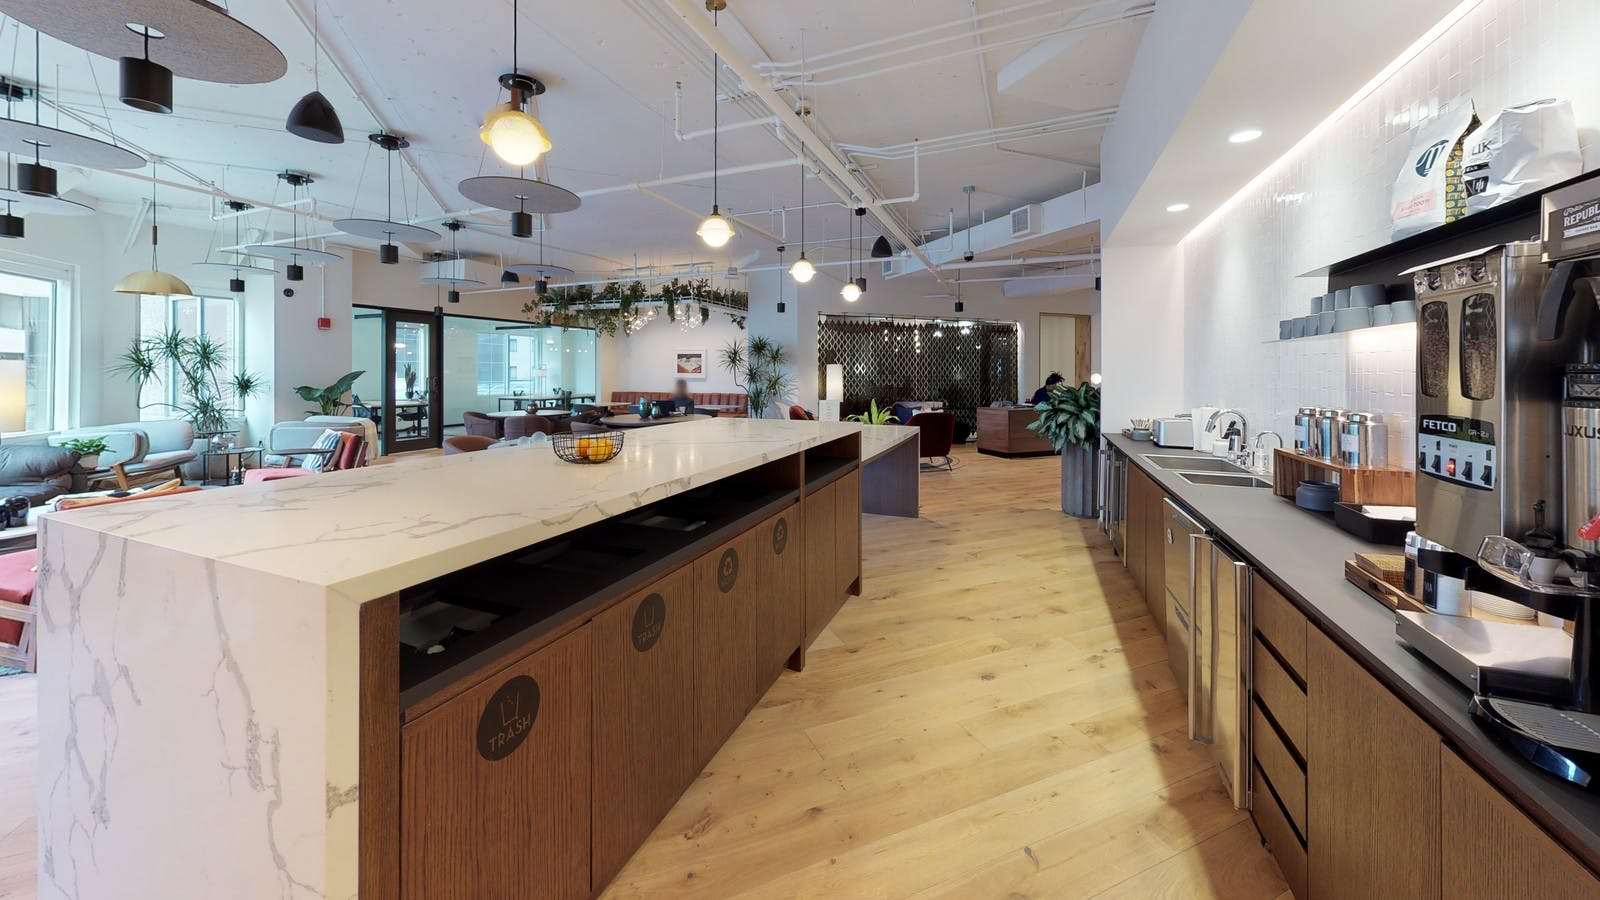 Cafe area and open seating in a large modern coworking space with many amenities